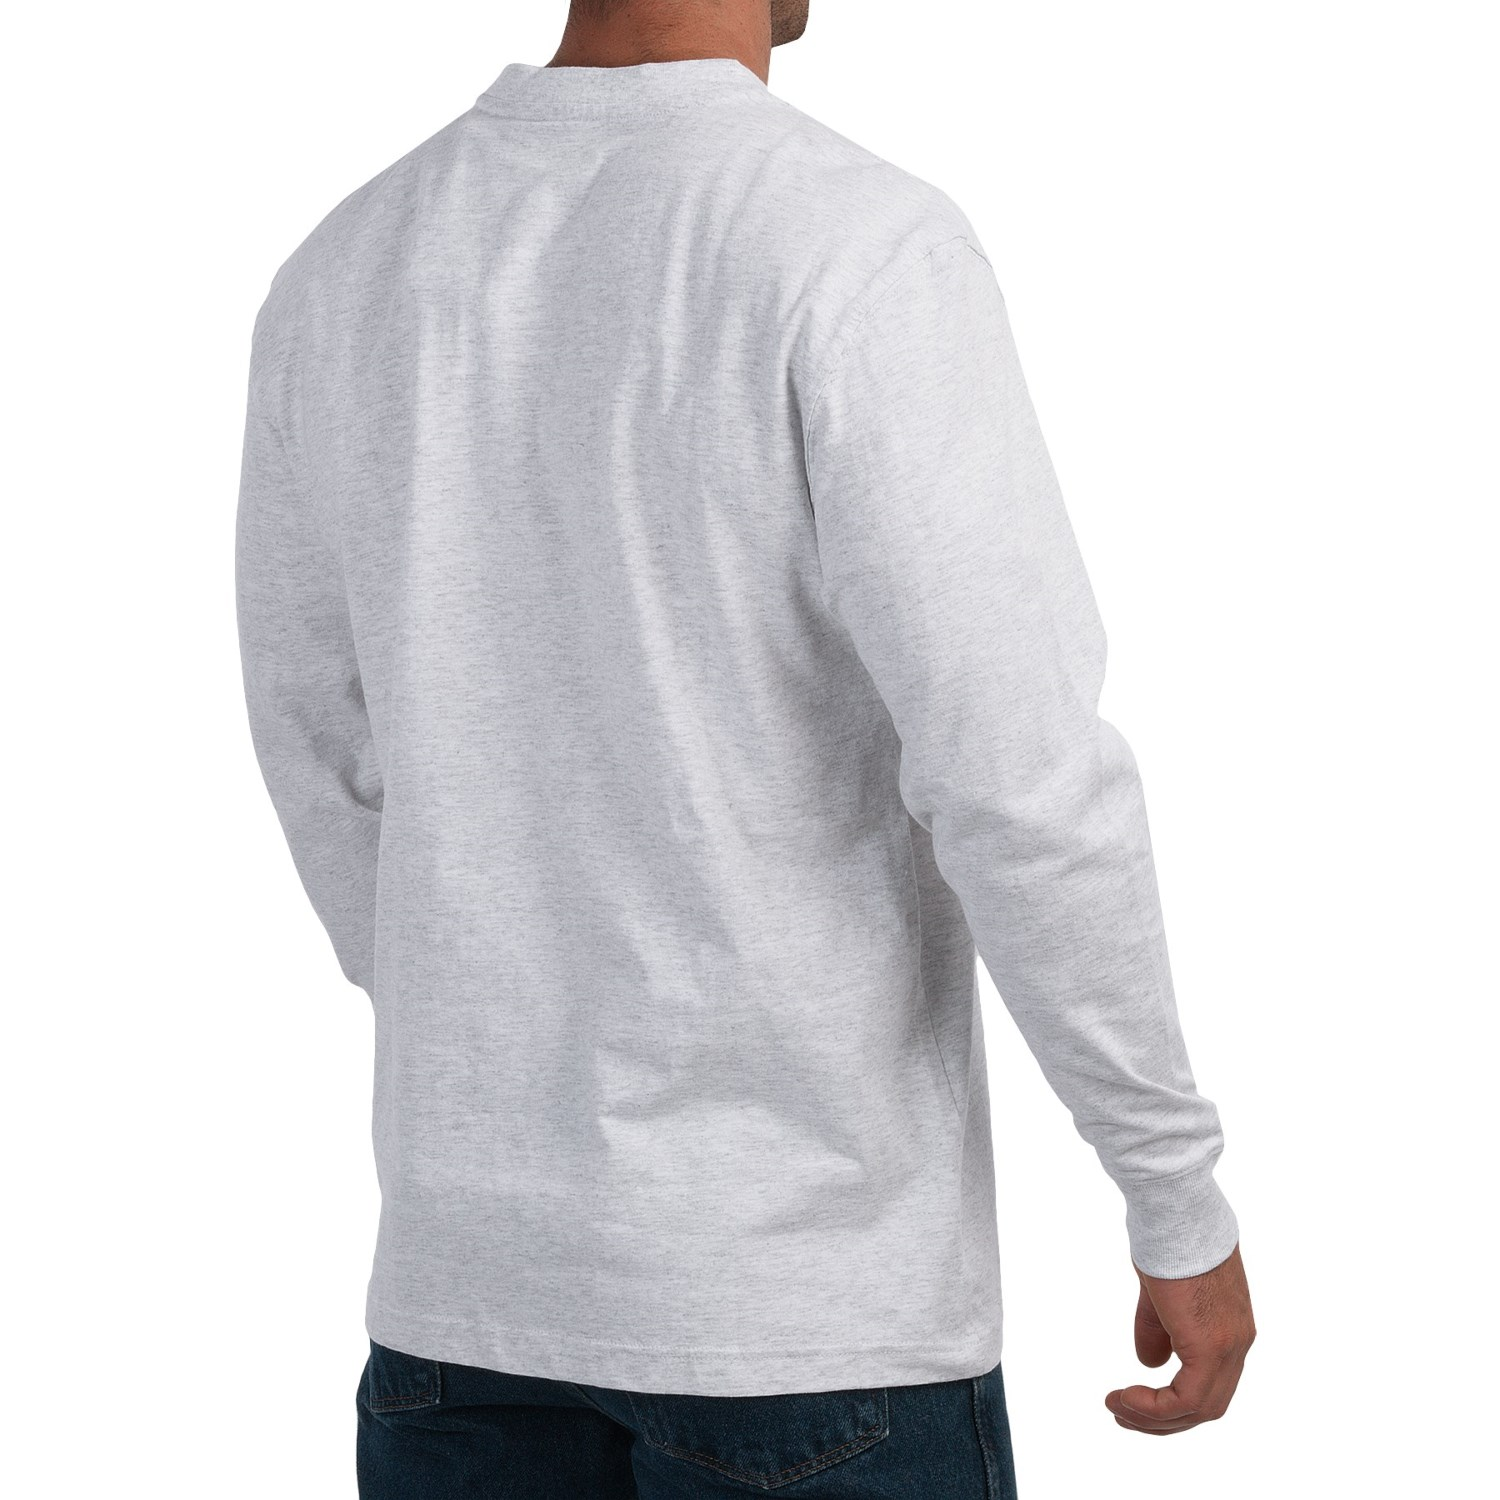 Dickies cotton jersey henley shirt for men 9849n save 56 for Long sleeve henley shirts for men